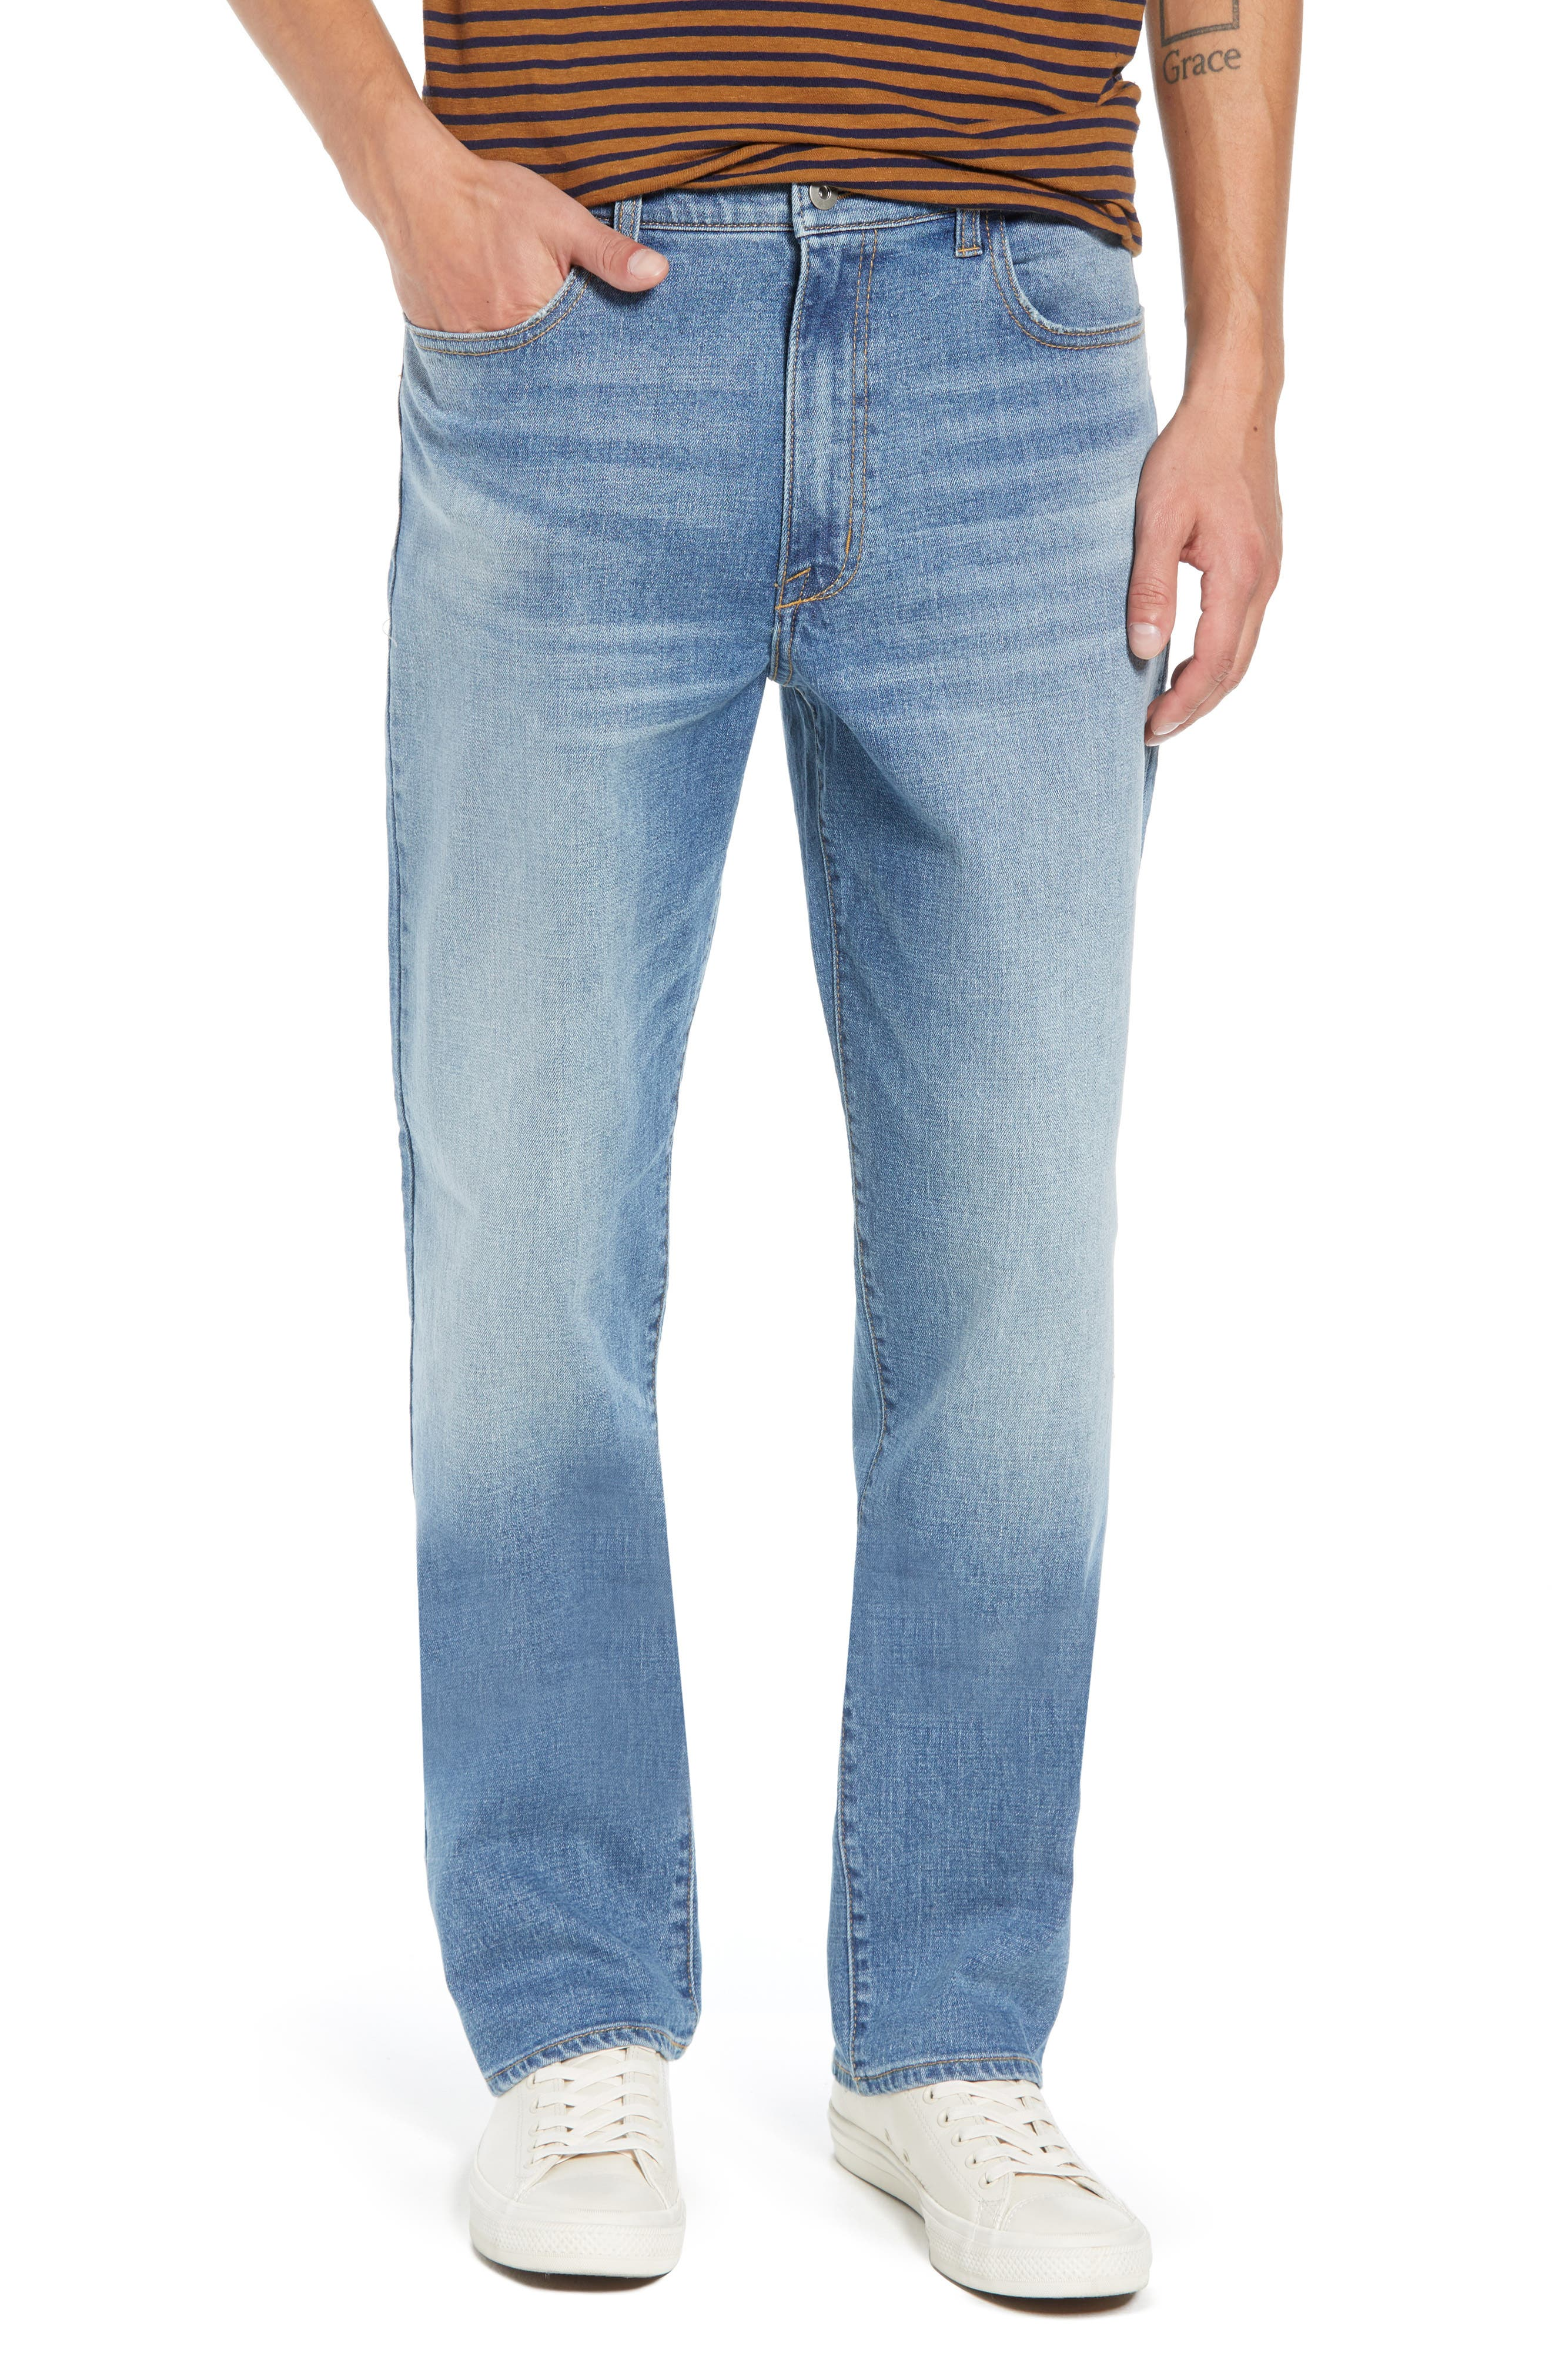 Straight Leg Jeans,                         Main,                         color, BLUE EVAN WASH